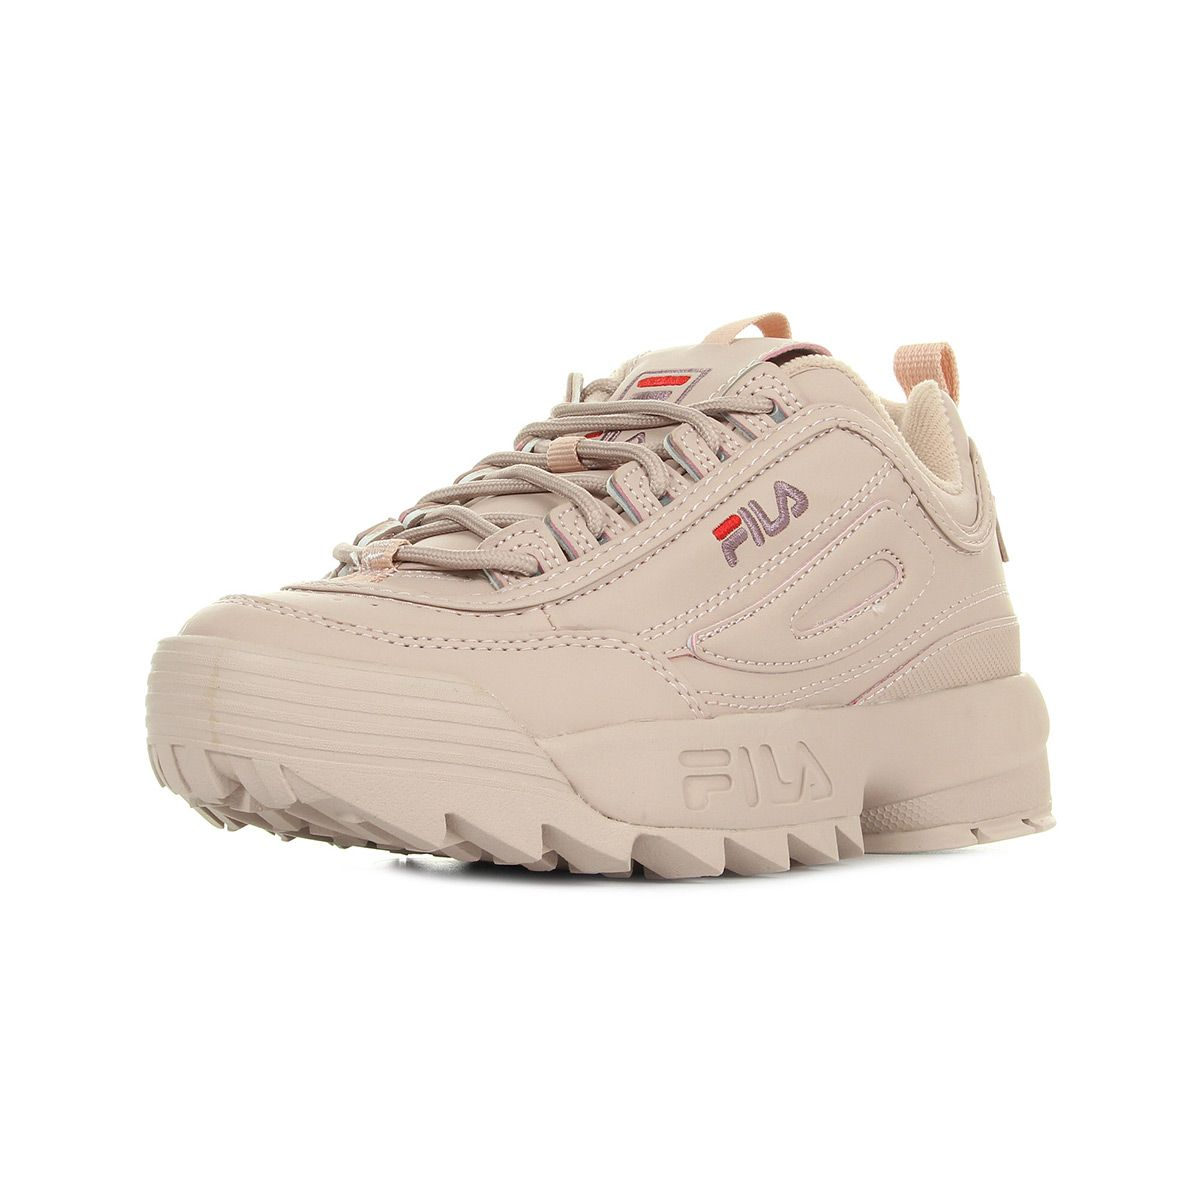 Woodrose Walking Disruptor In Fila The Low Path Shoes Wmn Right OqwaqxXSt